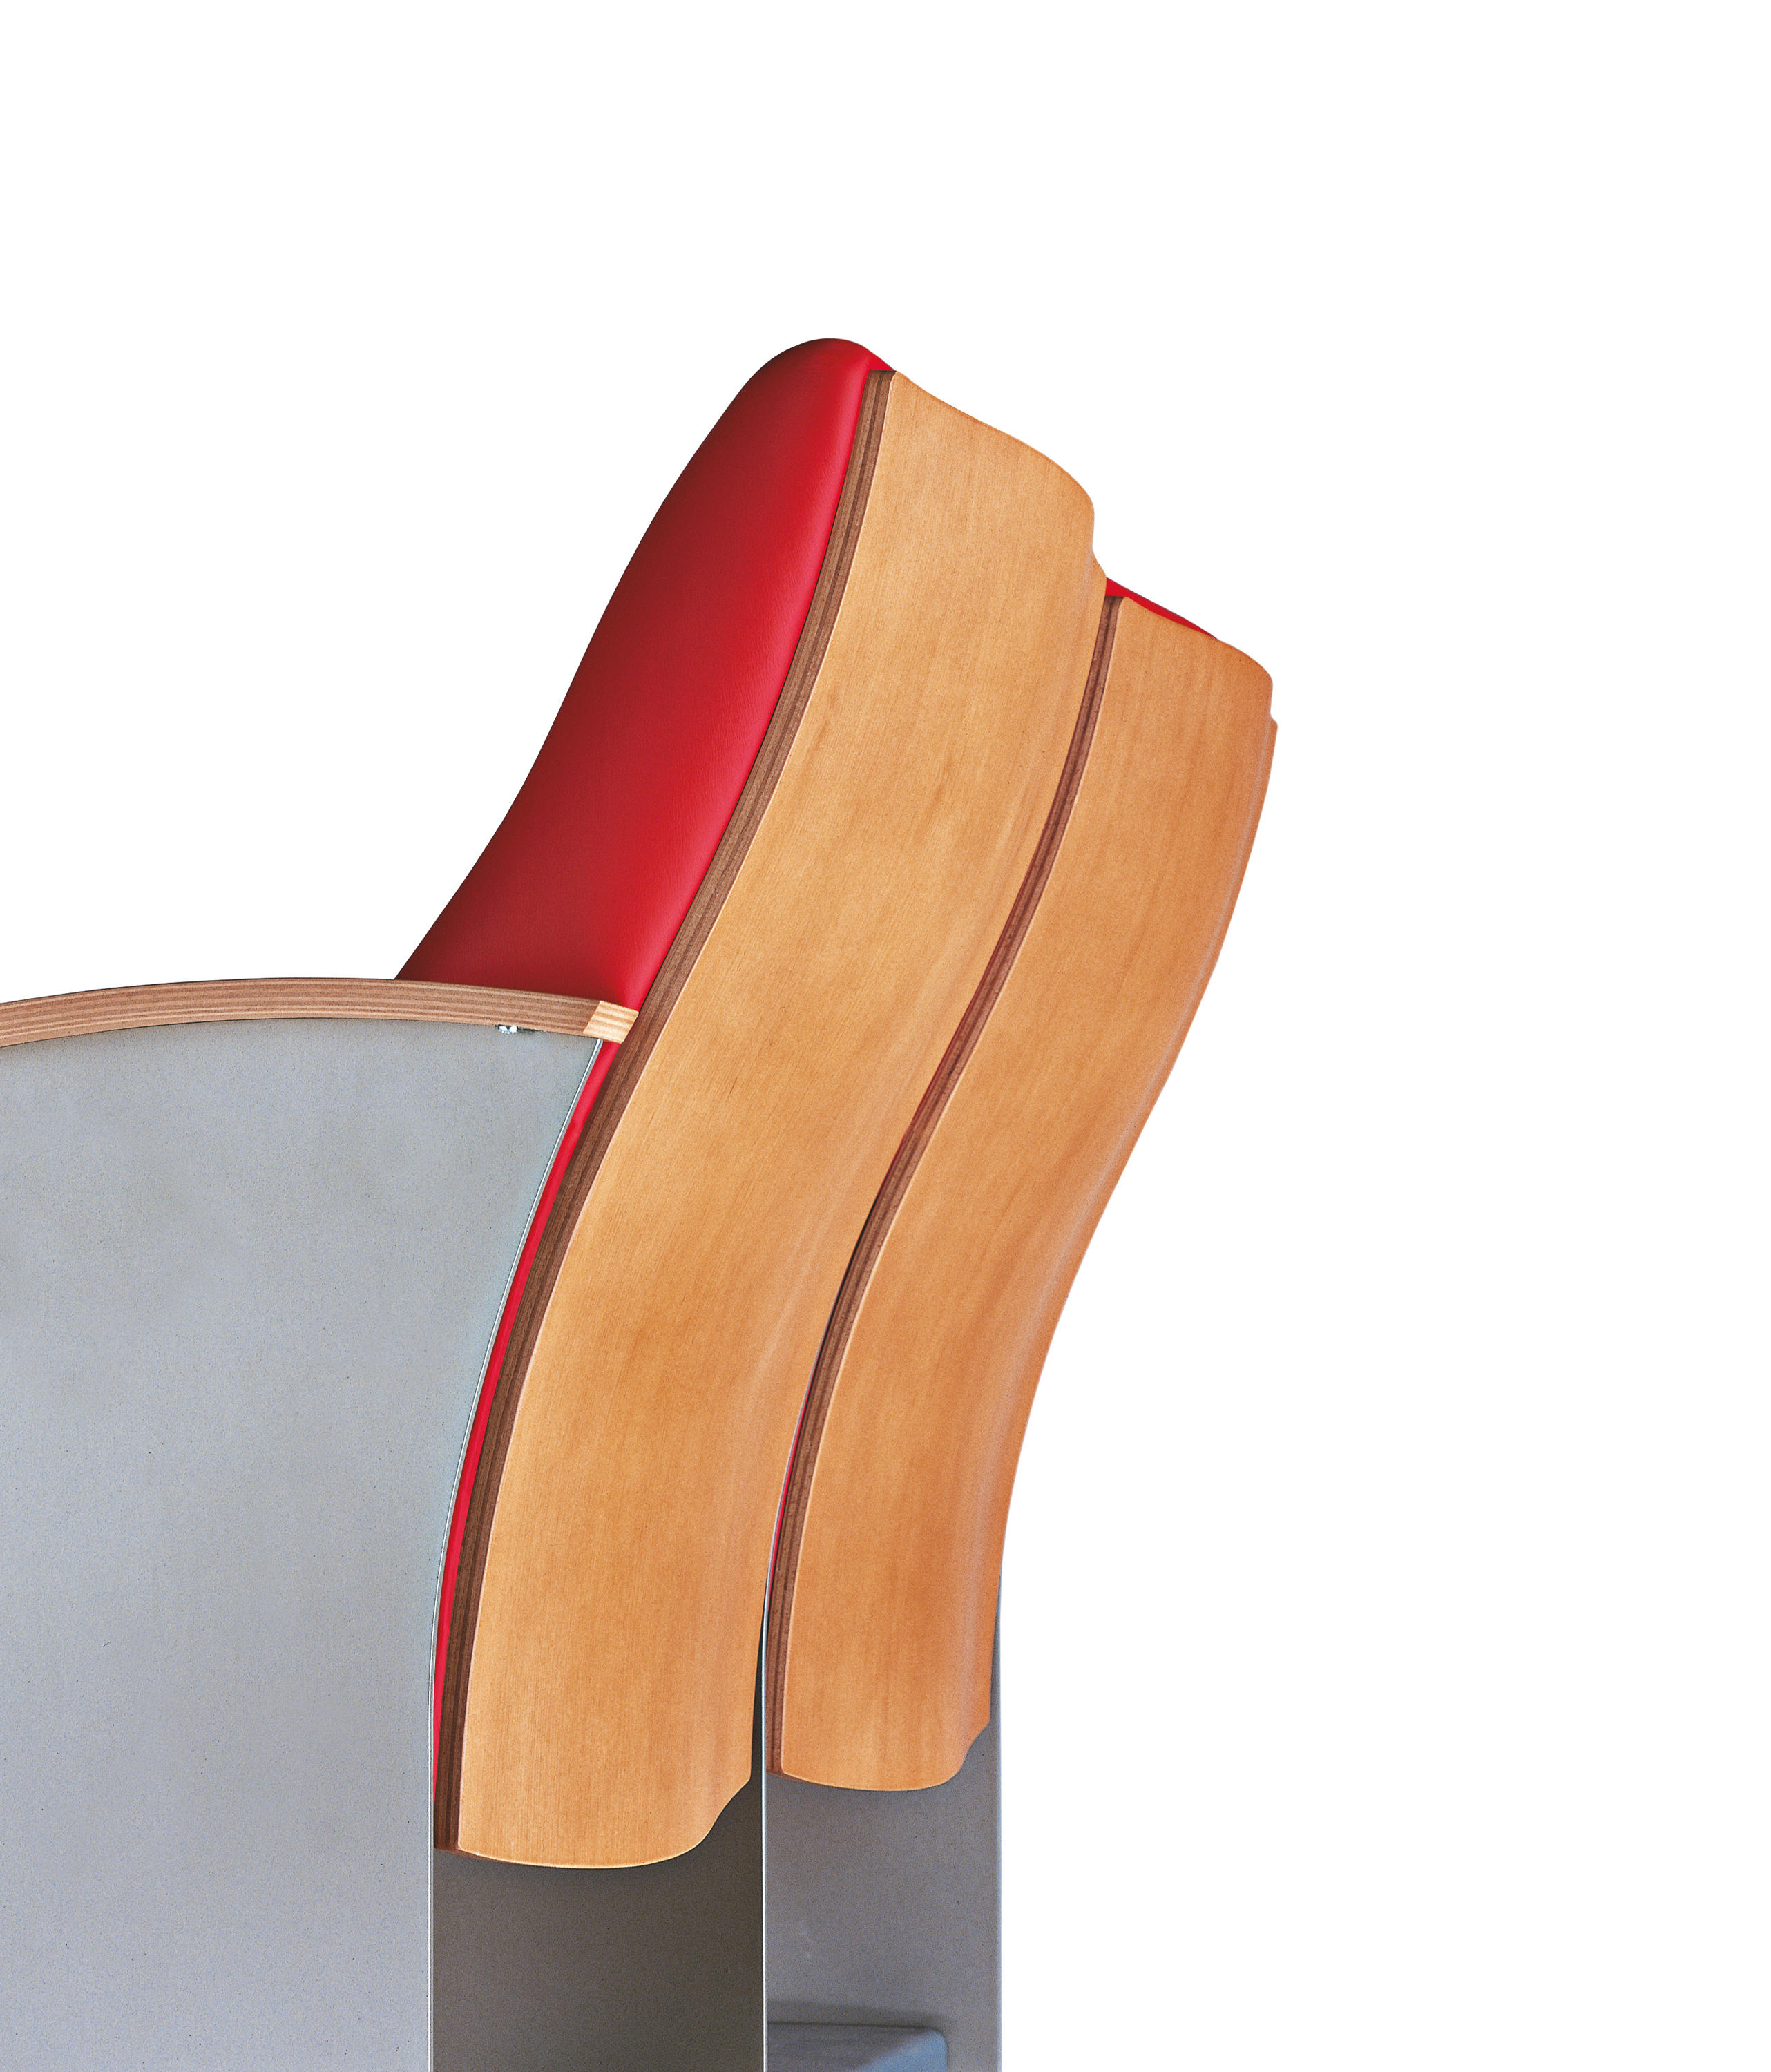 ... Frank O. Gehry Chair By Poltrona Frau Group Contract Division |  Auditorium Seating